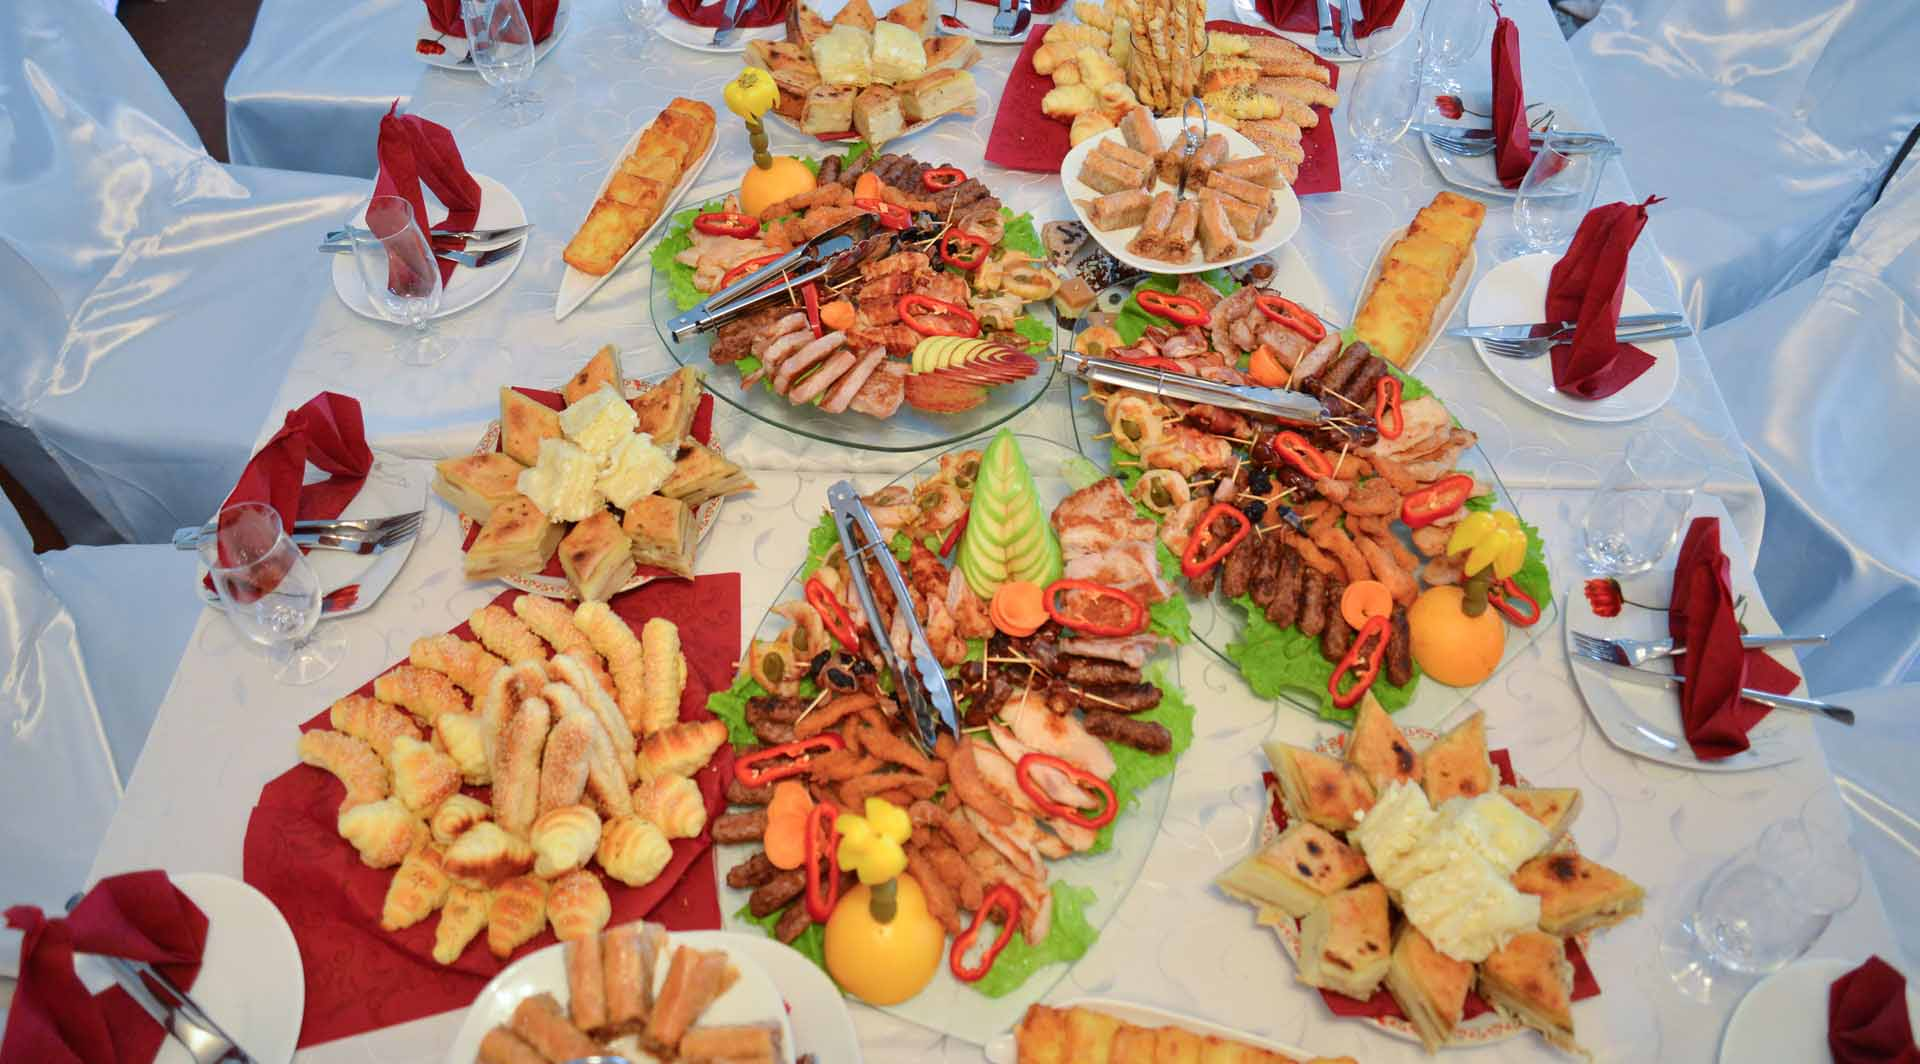 Catering catering-konfirmation-stor